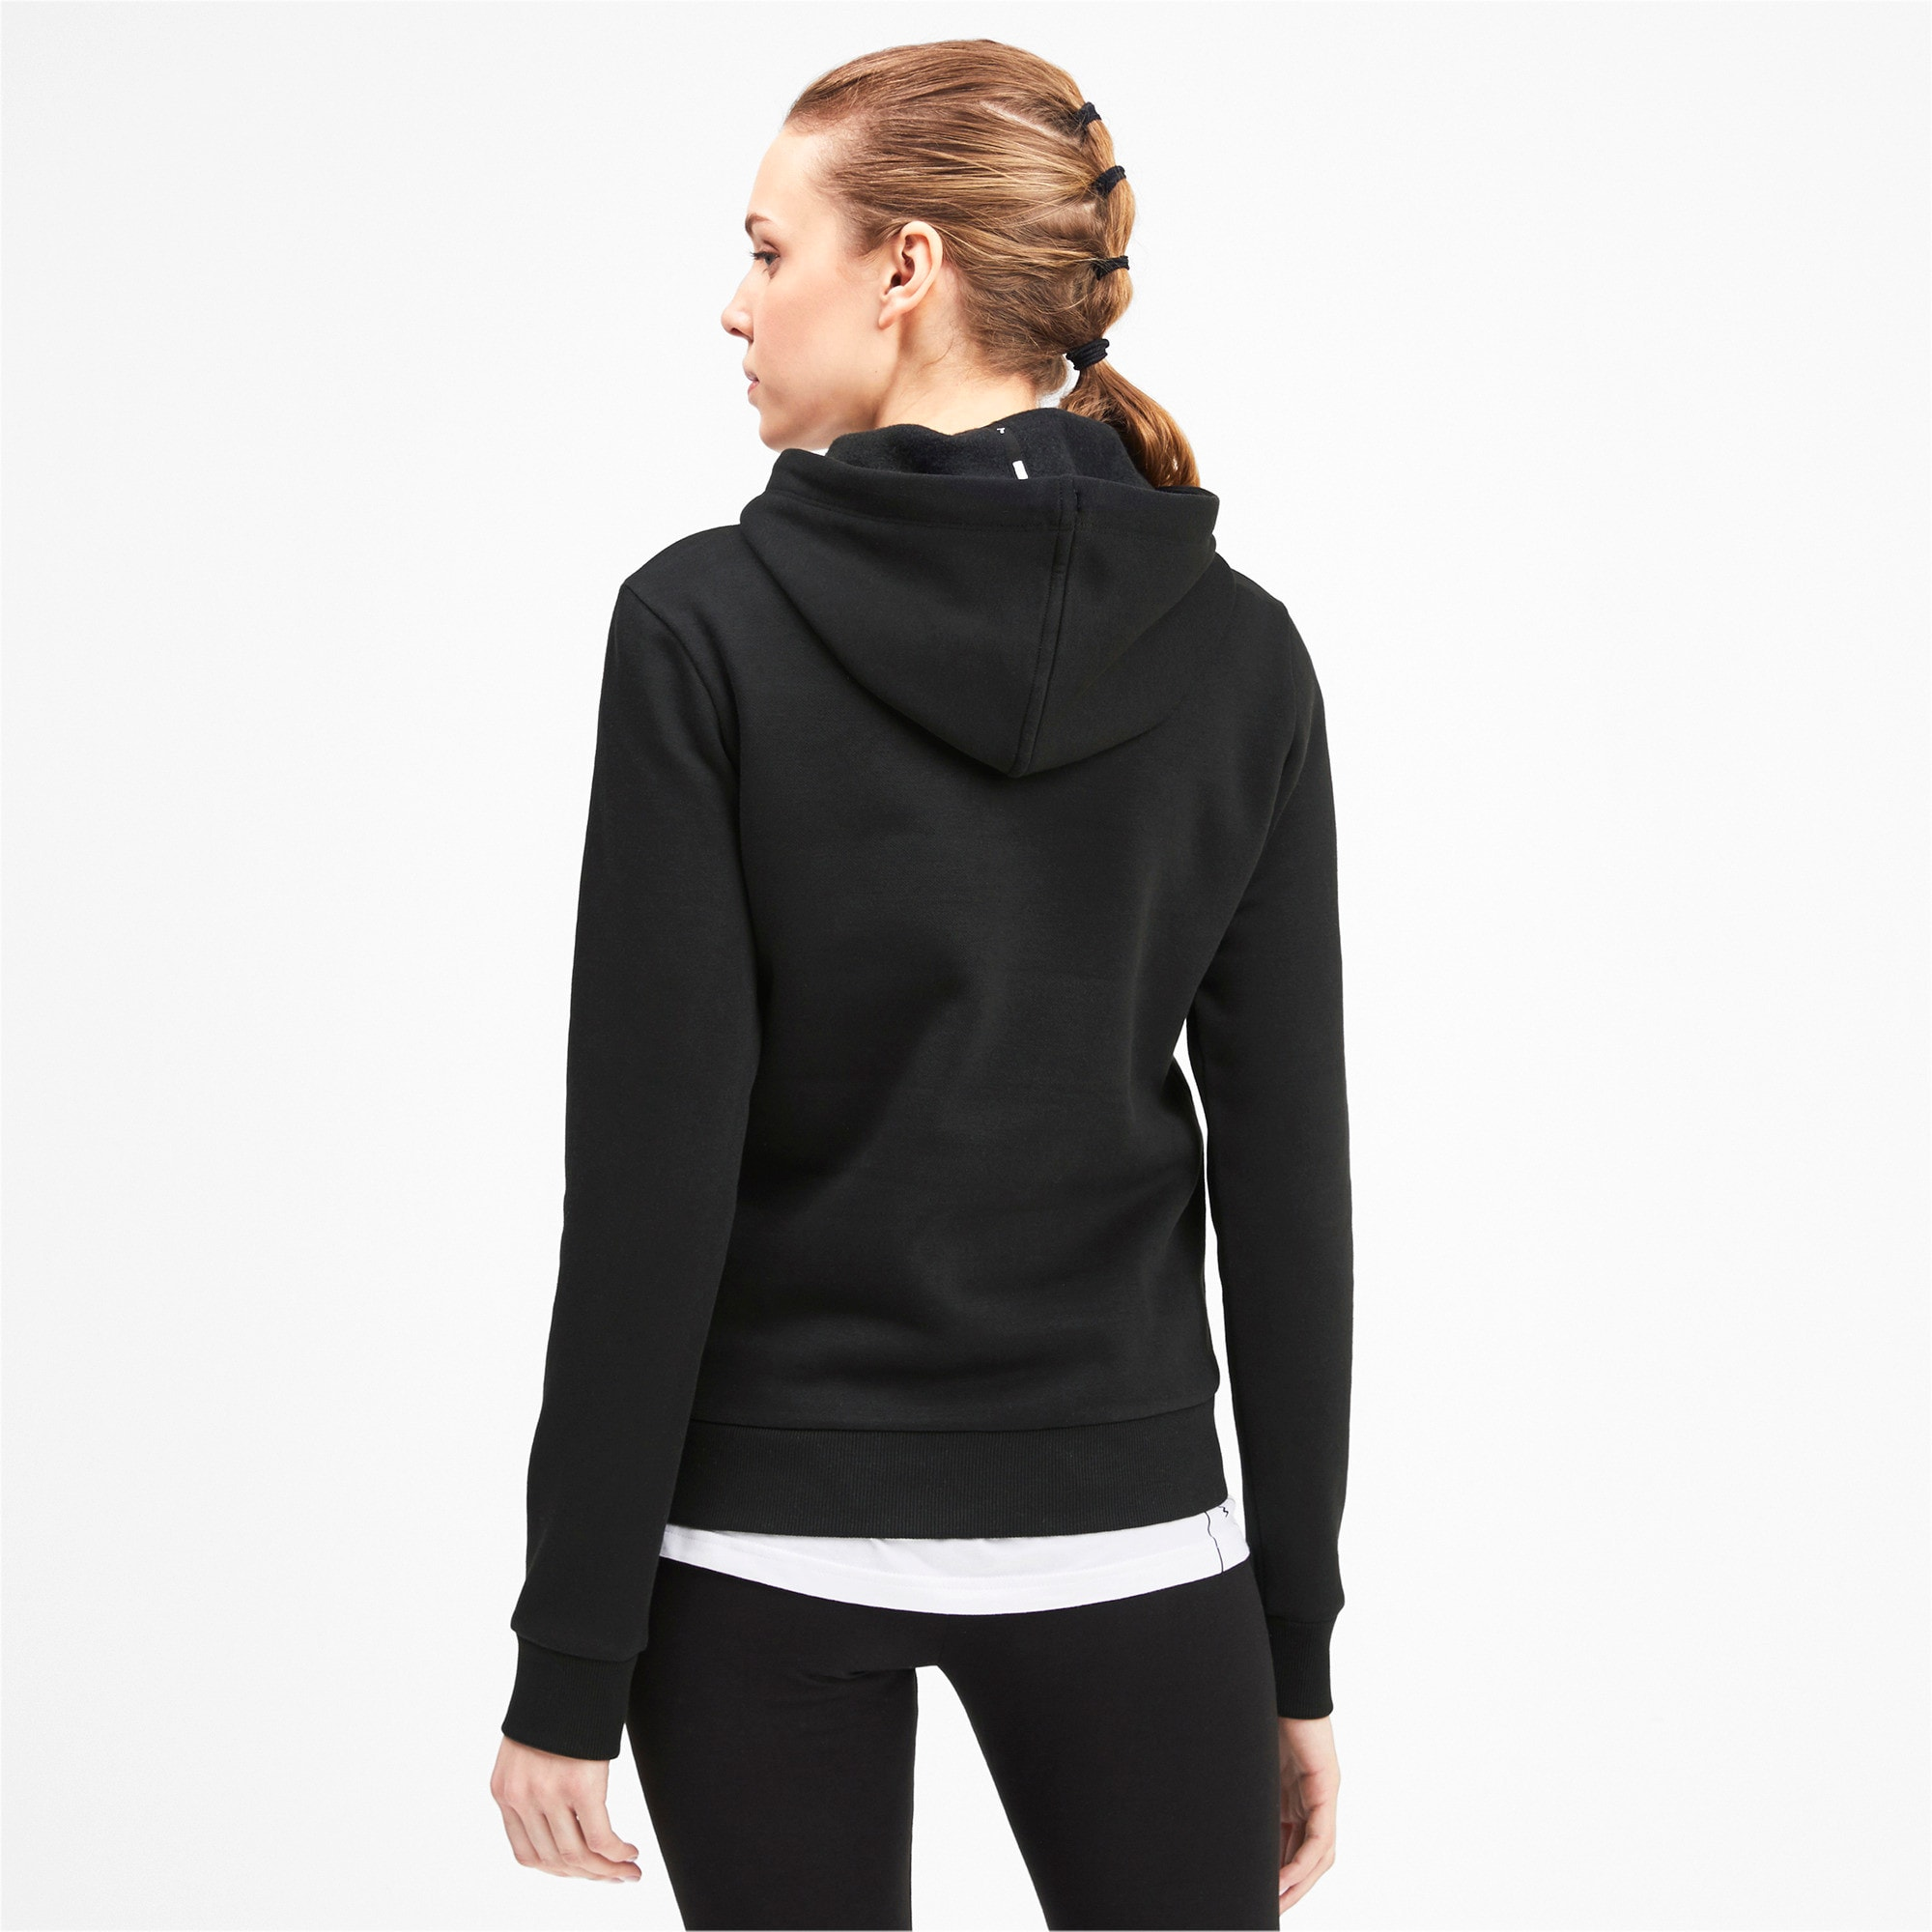 Thumbnail 2 of Kangaroo Hoodie, Puma Black, medium-IND